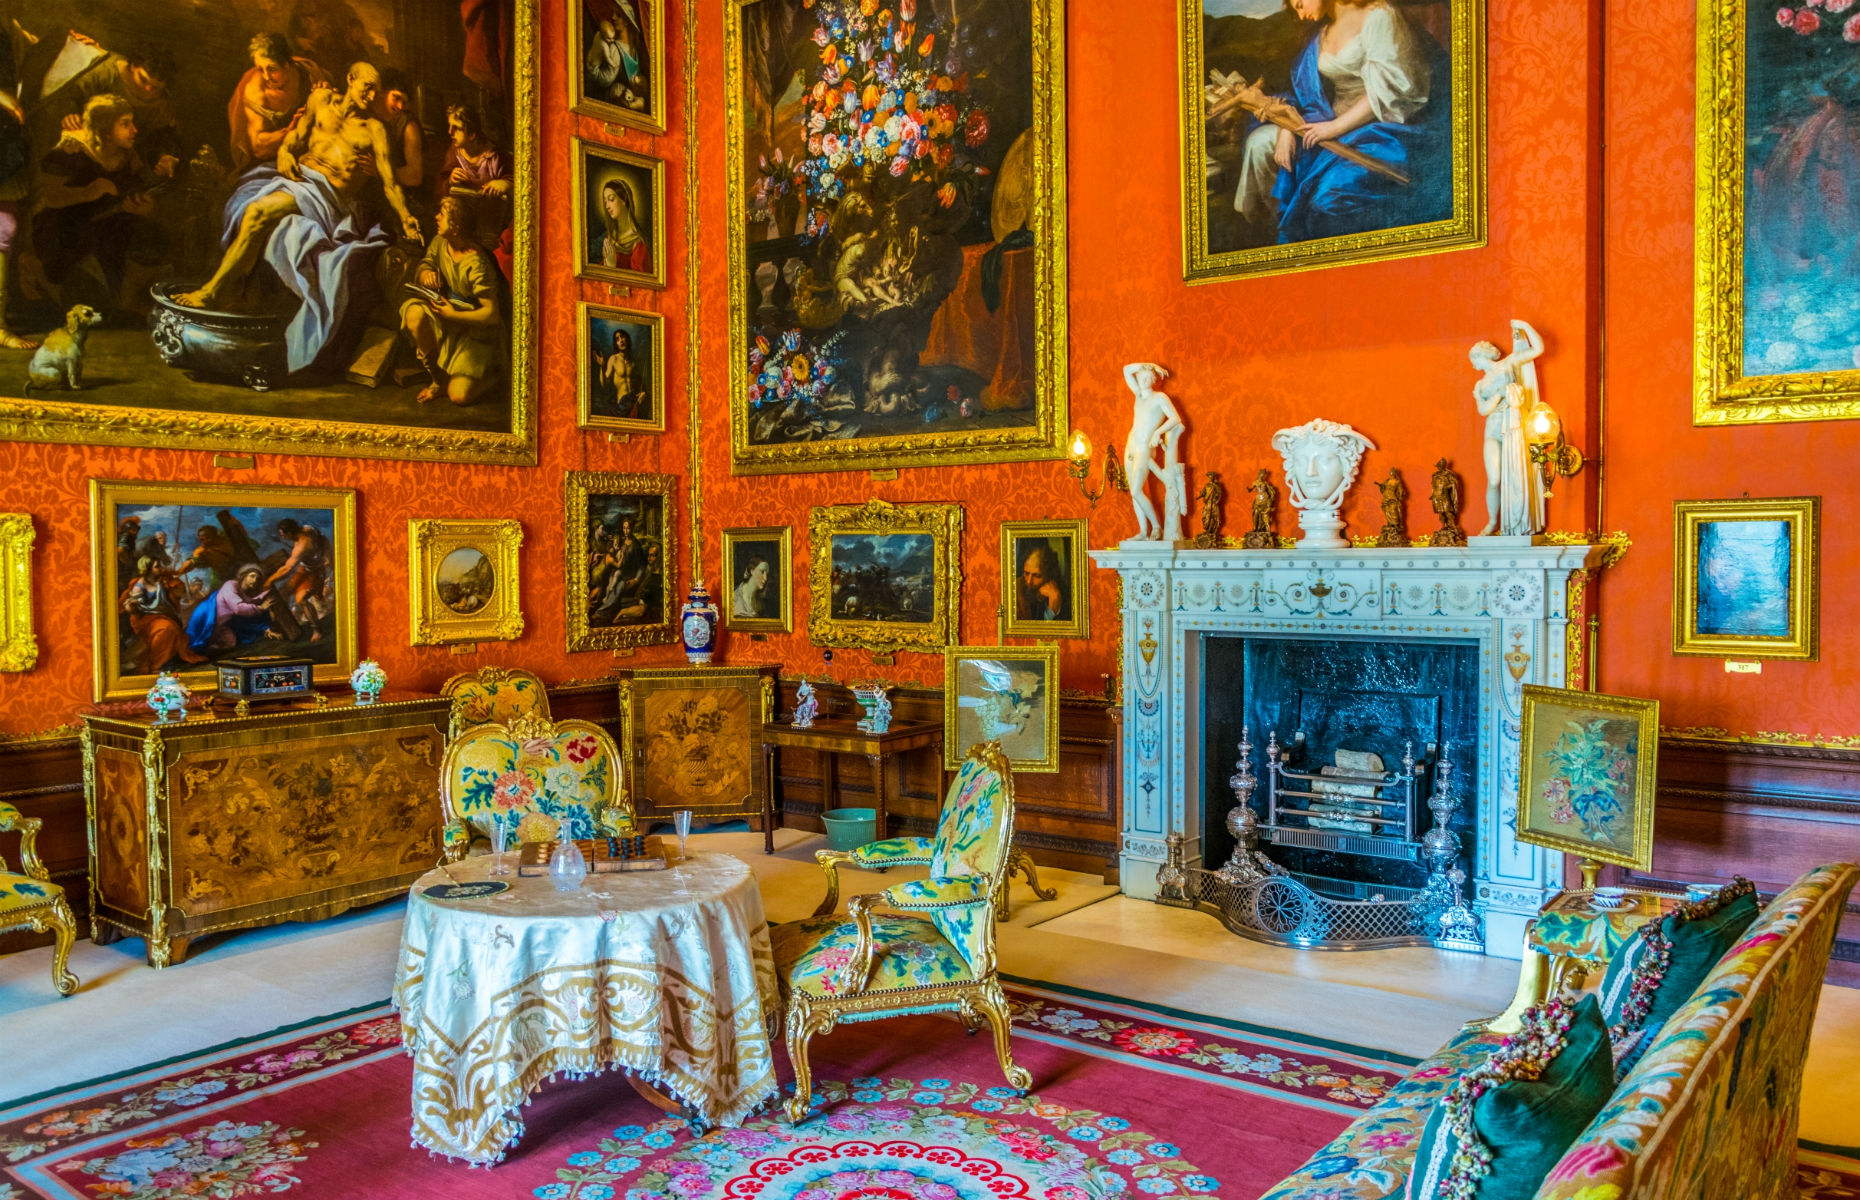 Burghley House interior (Image: trabantos/Shutterstock)